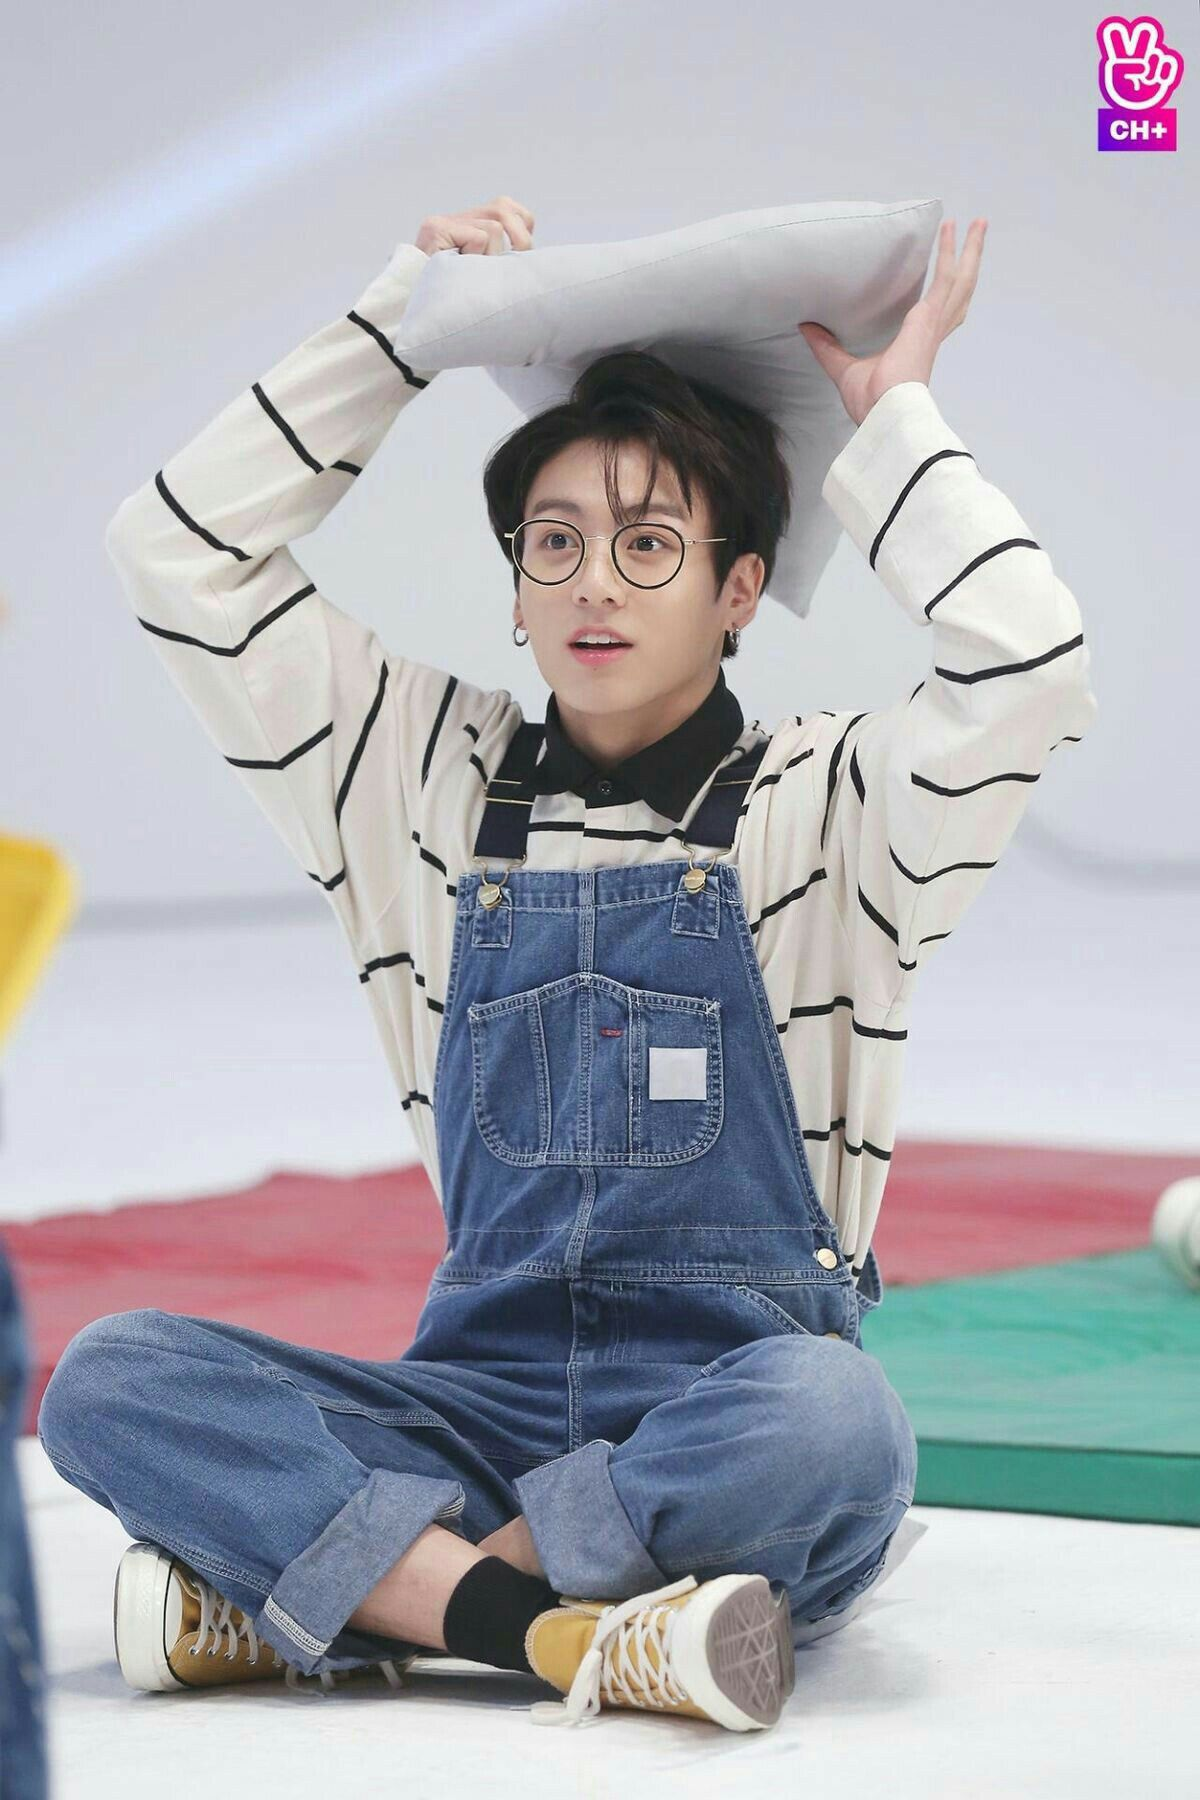 Adorable Bts Jungkook Cute Photos